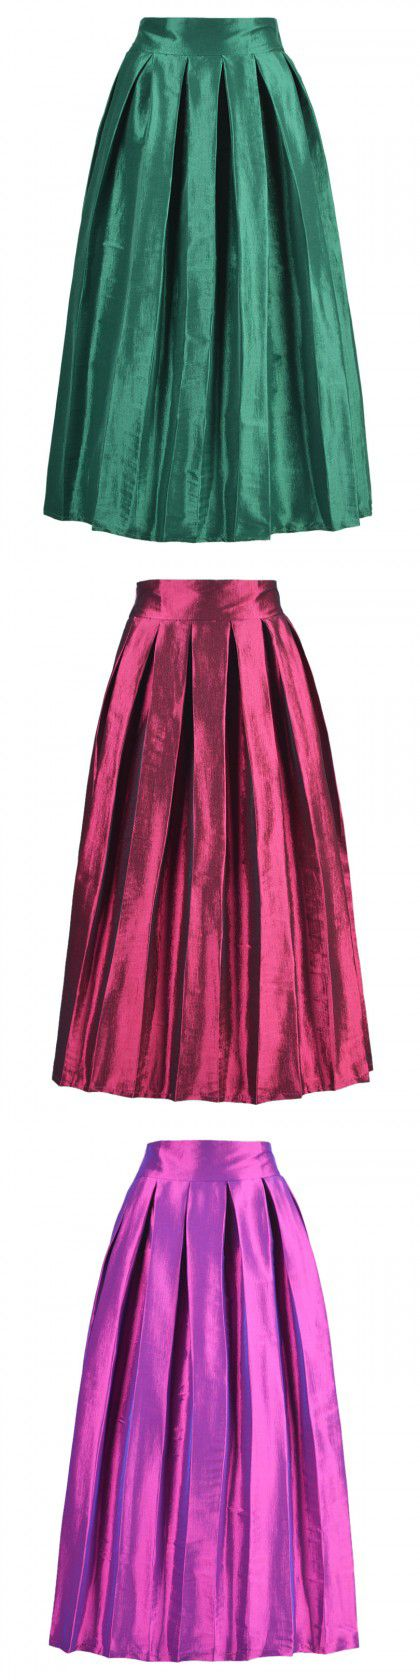 Skirt. High Waist Maxi Skirt and this demure skirt will help get you the on-trend look.